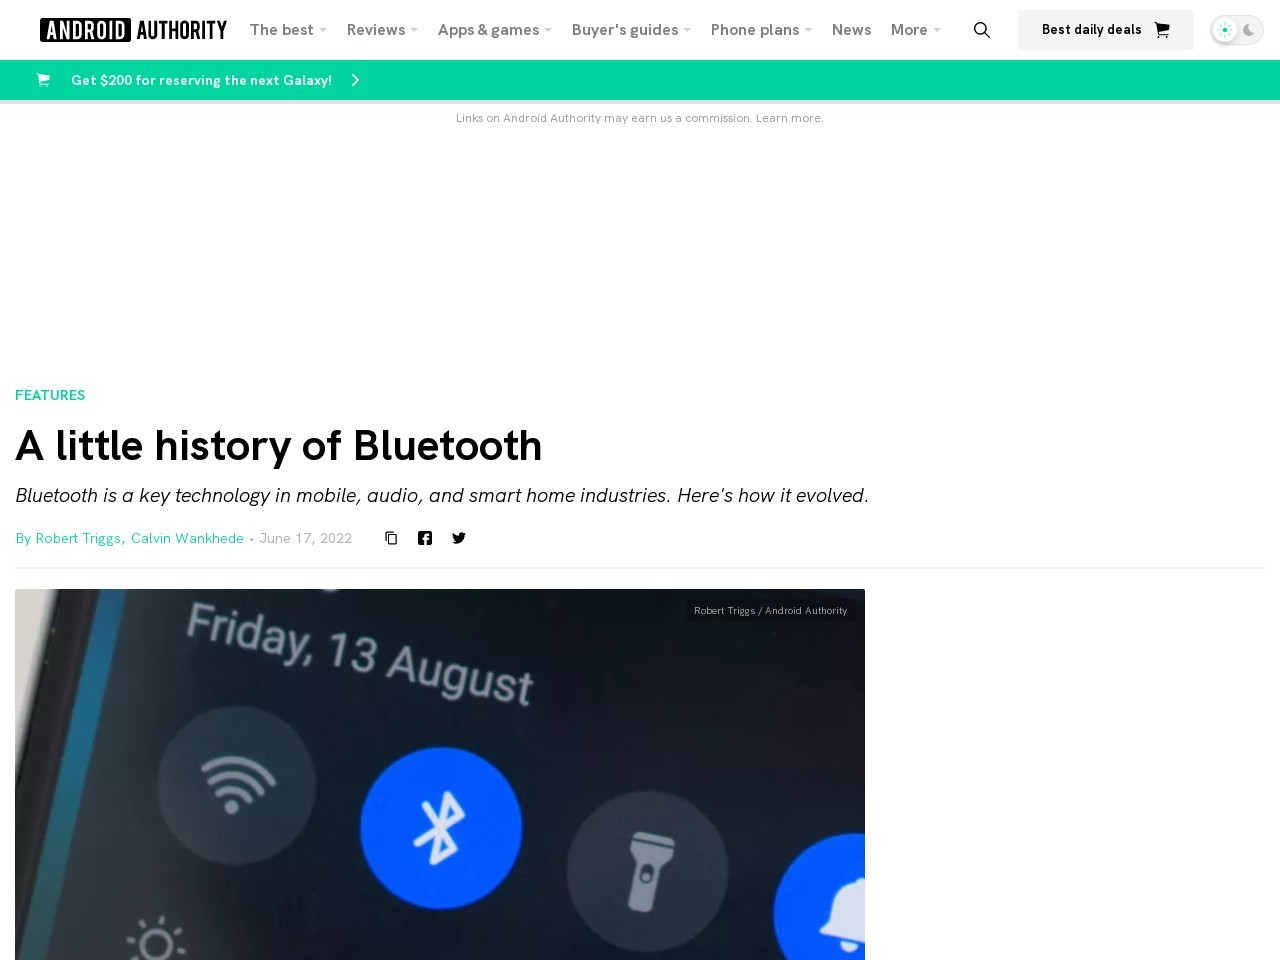 The history of Bluetooth